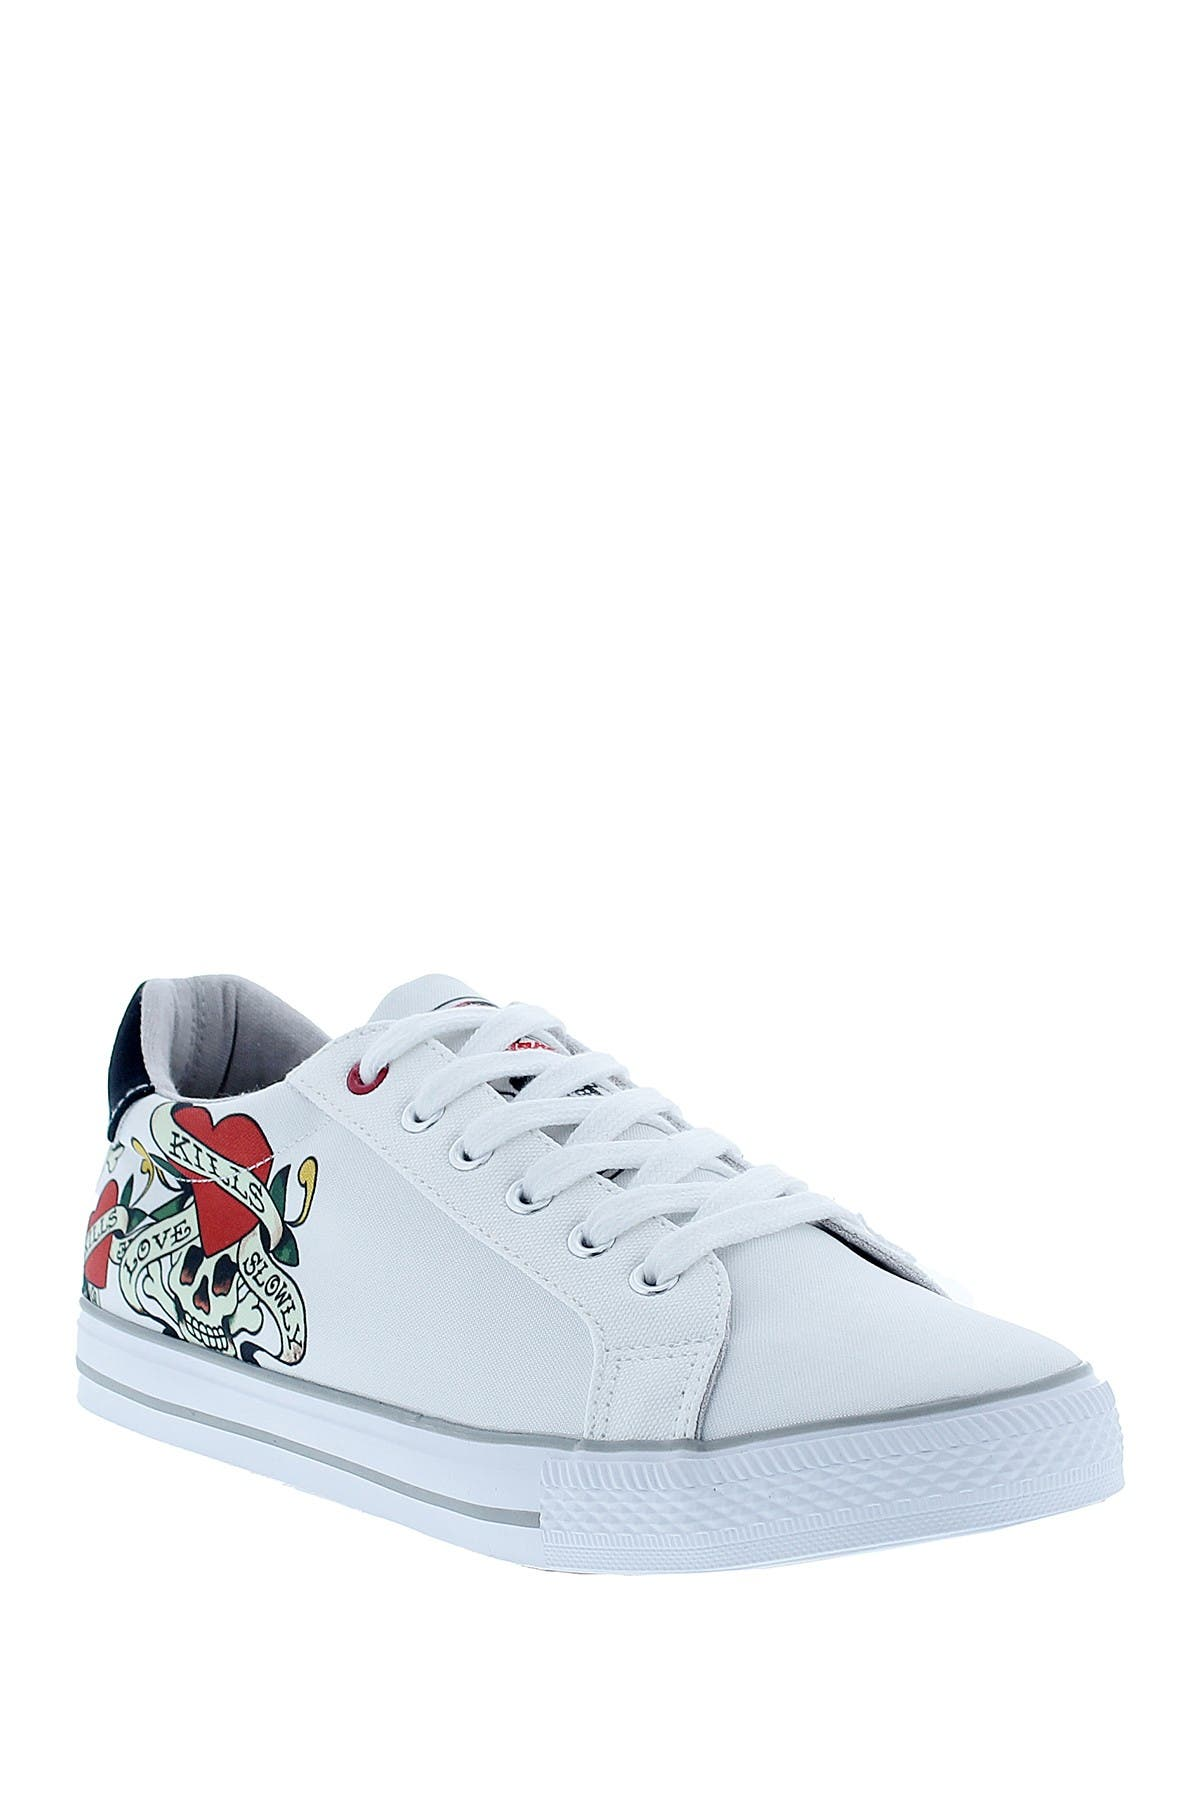 Image of Ed Hardy Thread Sneaker